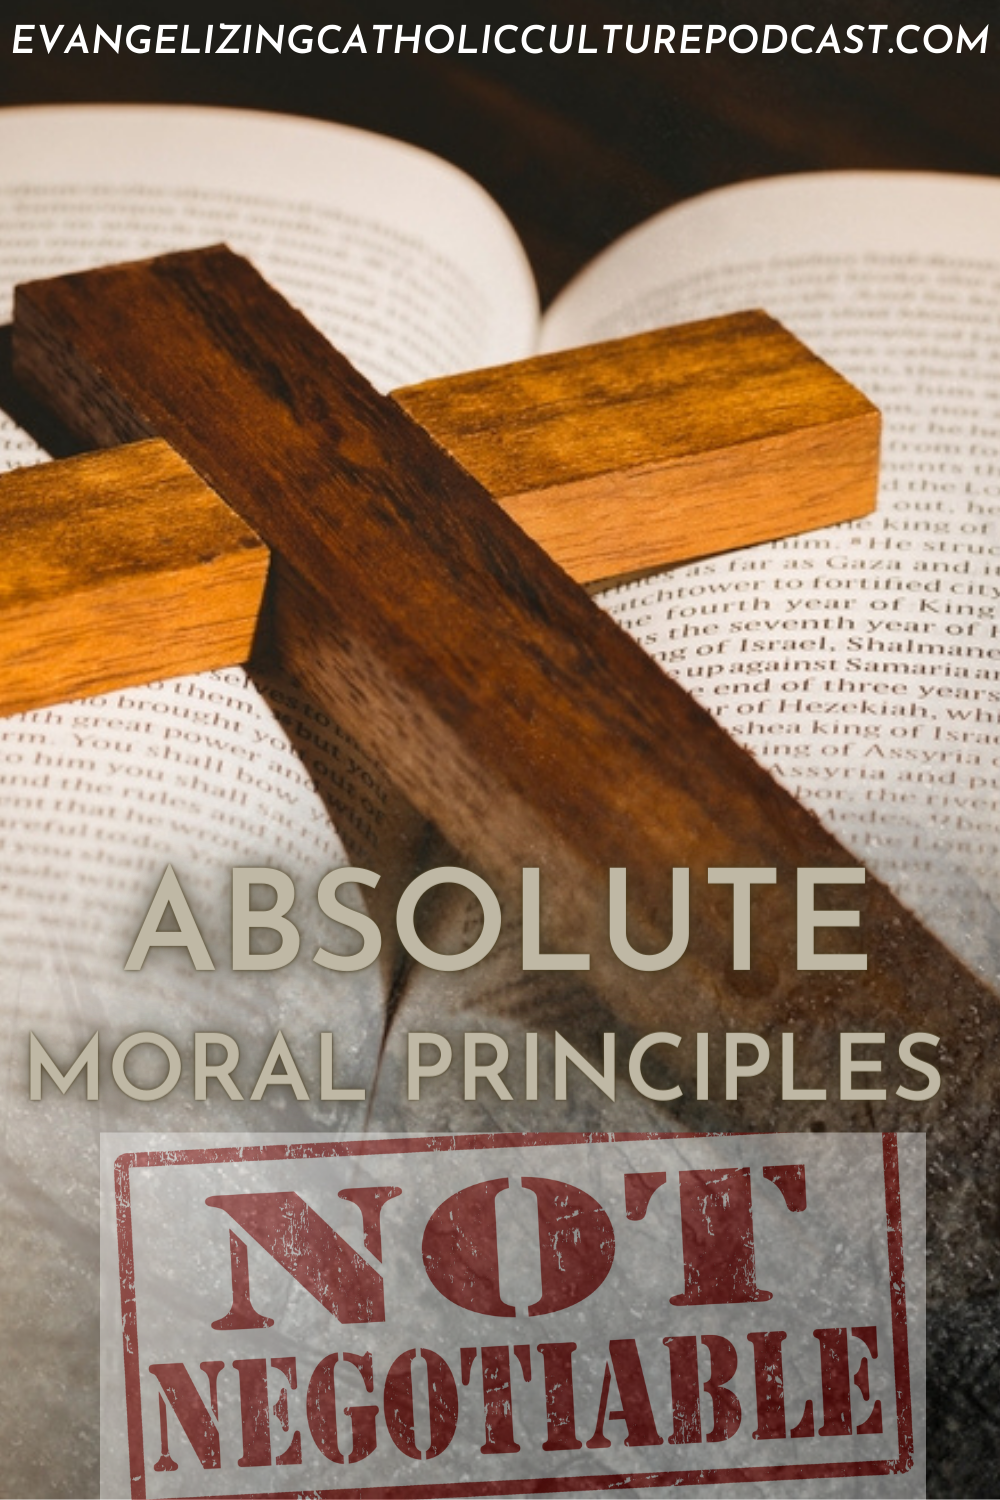 Absolute Moral Principles   What are the absolute moral principles that Christians especially Catholics must believe? In this episode, Father David explains the five clearly without any doubt or confusion. While some want to push falsehoods, there is a big difference in what we must believe. #christianpodcast #podcast #MoralPrinciples #Christianmorality #christianmorals #morals #Christianity #Christians #Catholic